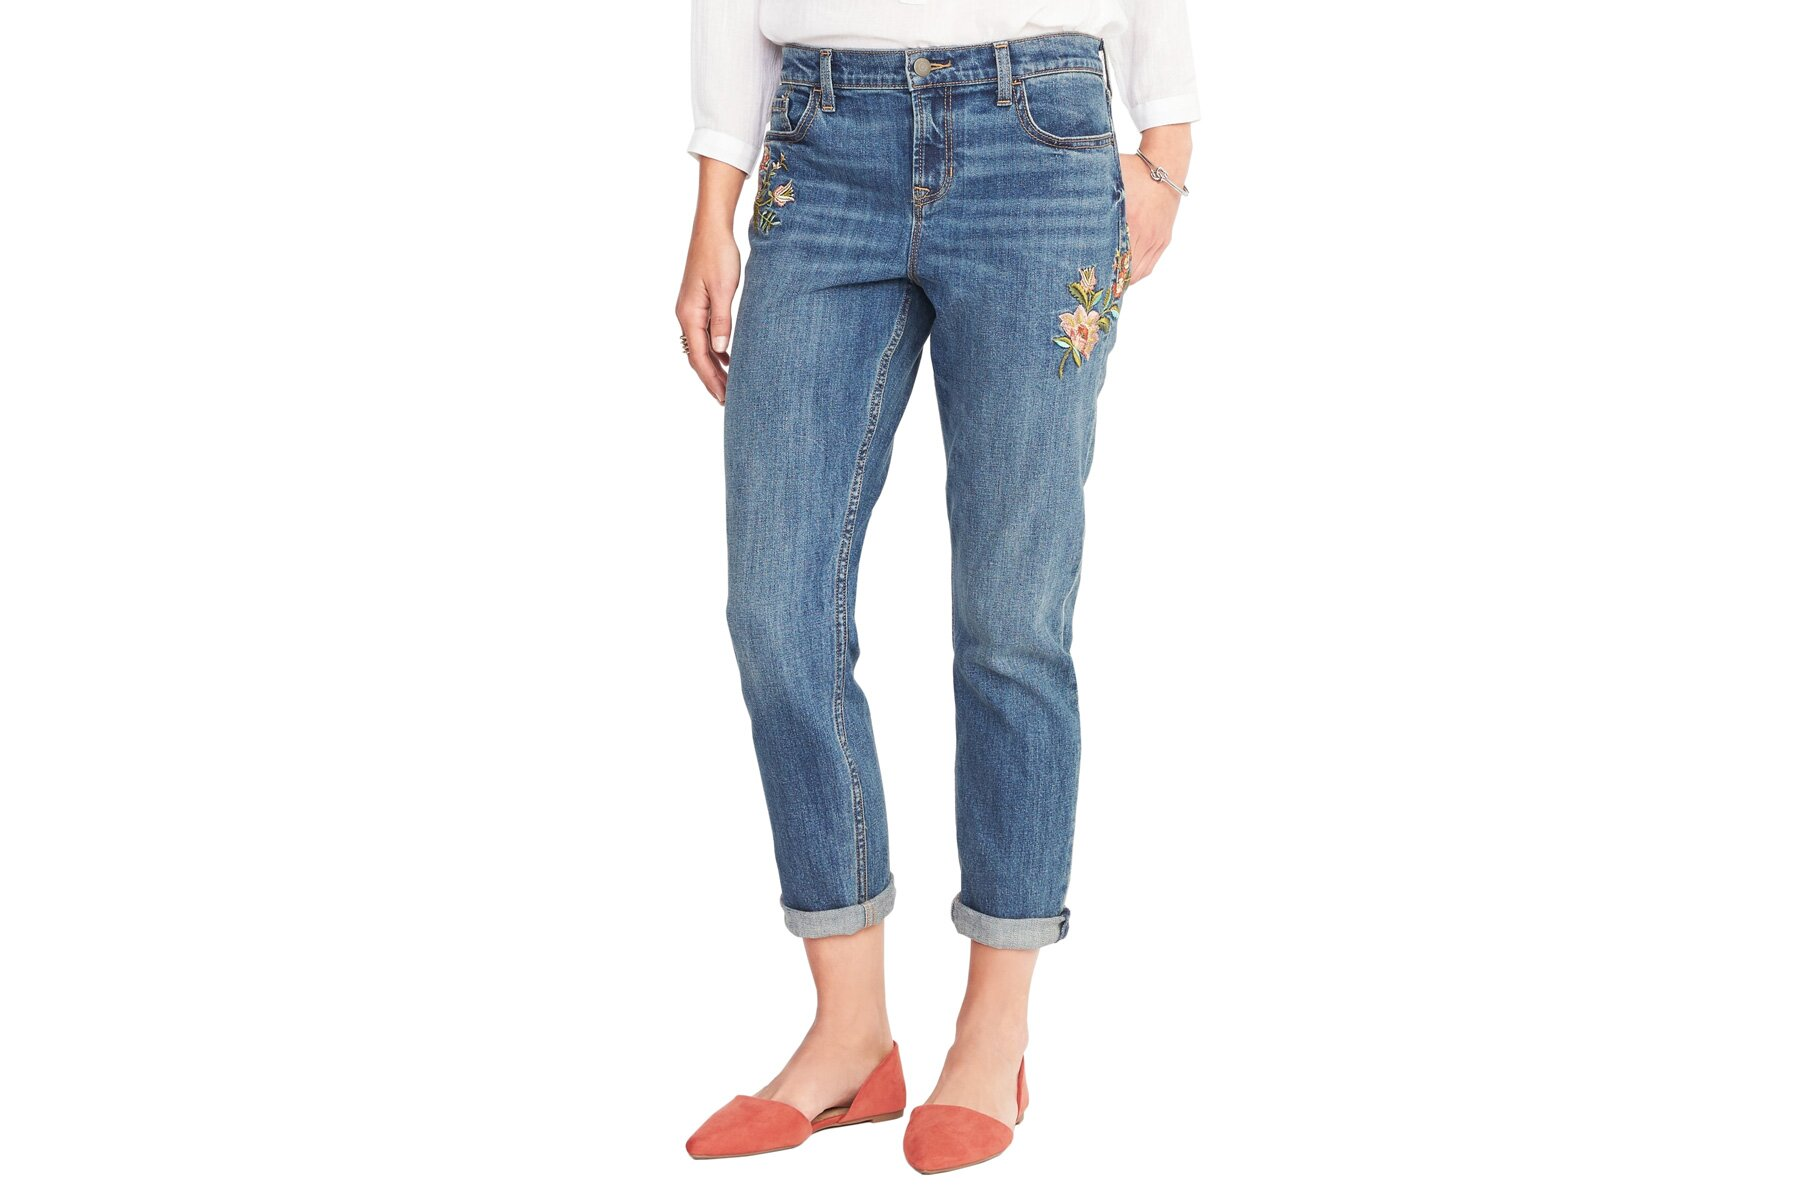 5e3f20cdd06d3 6 Trendy Pairs of Jeans Under $35 From Gap and Old Navy's Big Sale